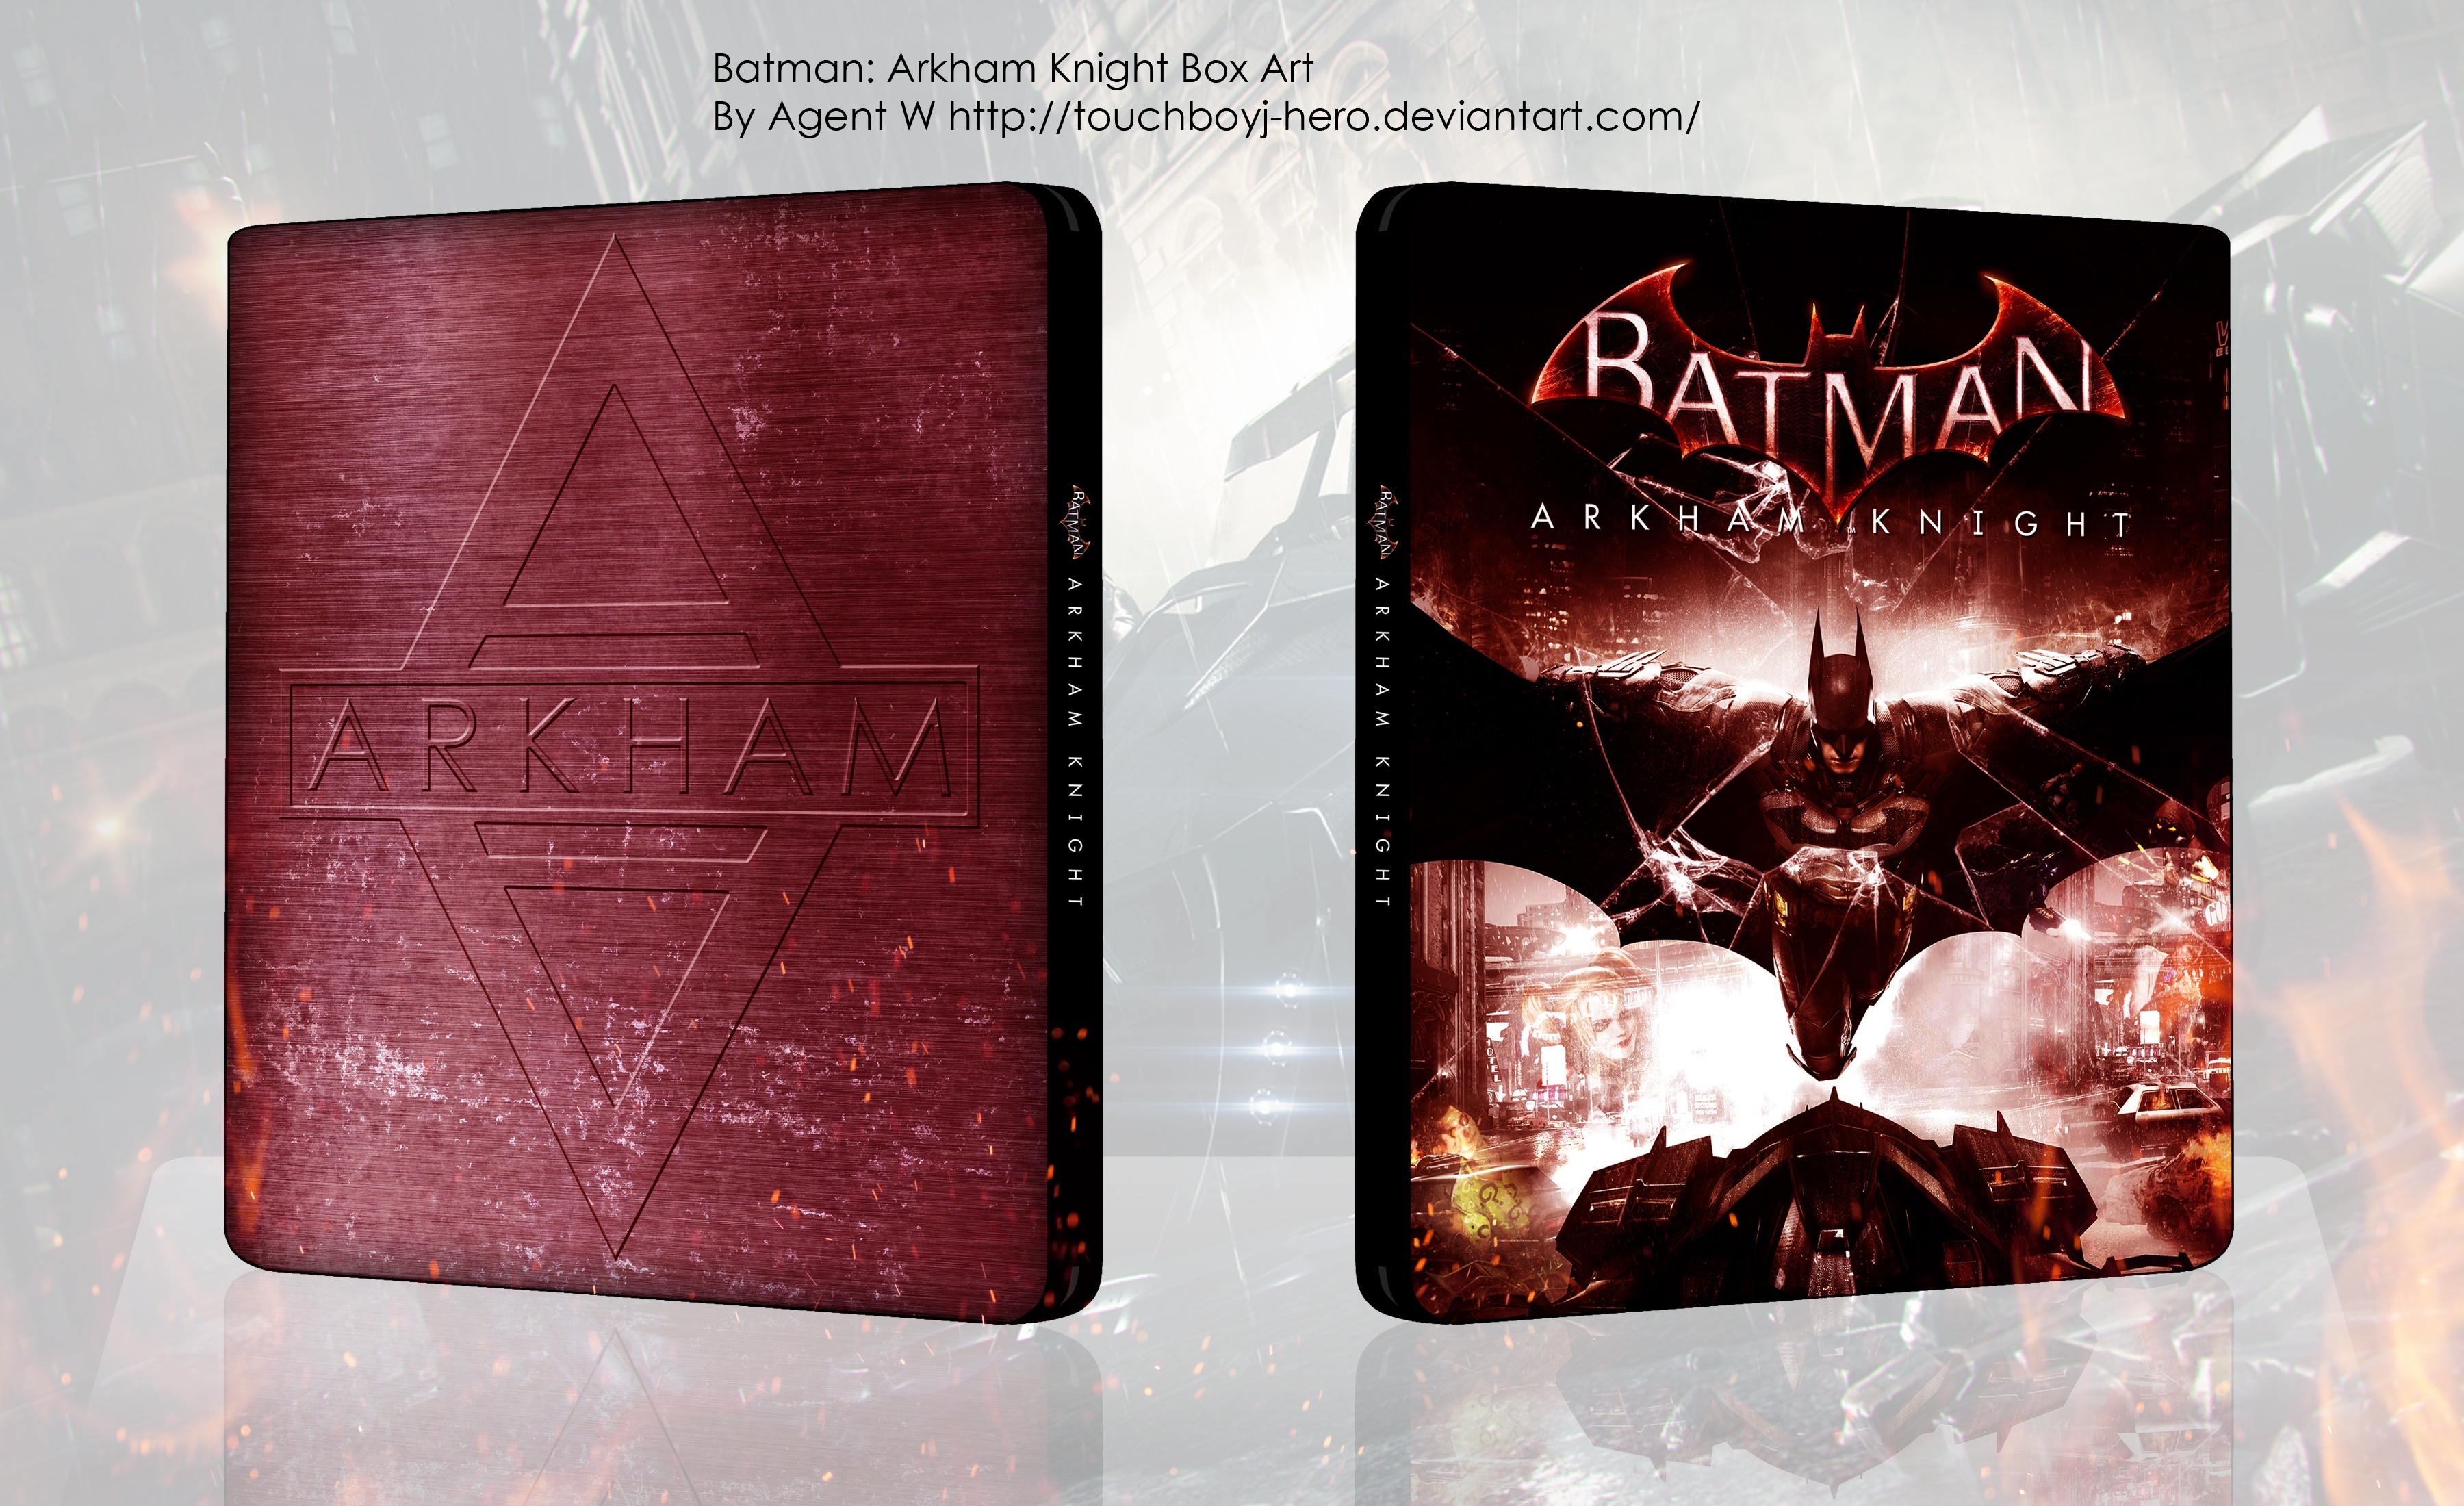 Viewing full size Batman: Arkham Knight box cover